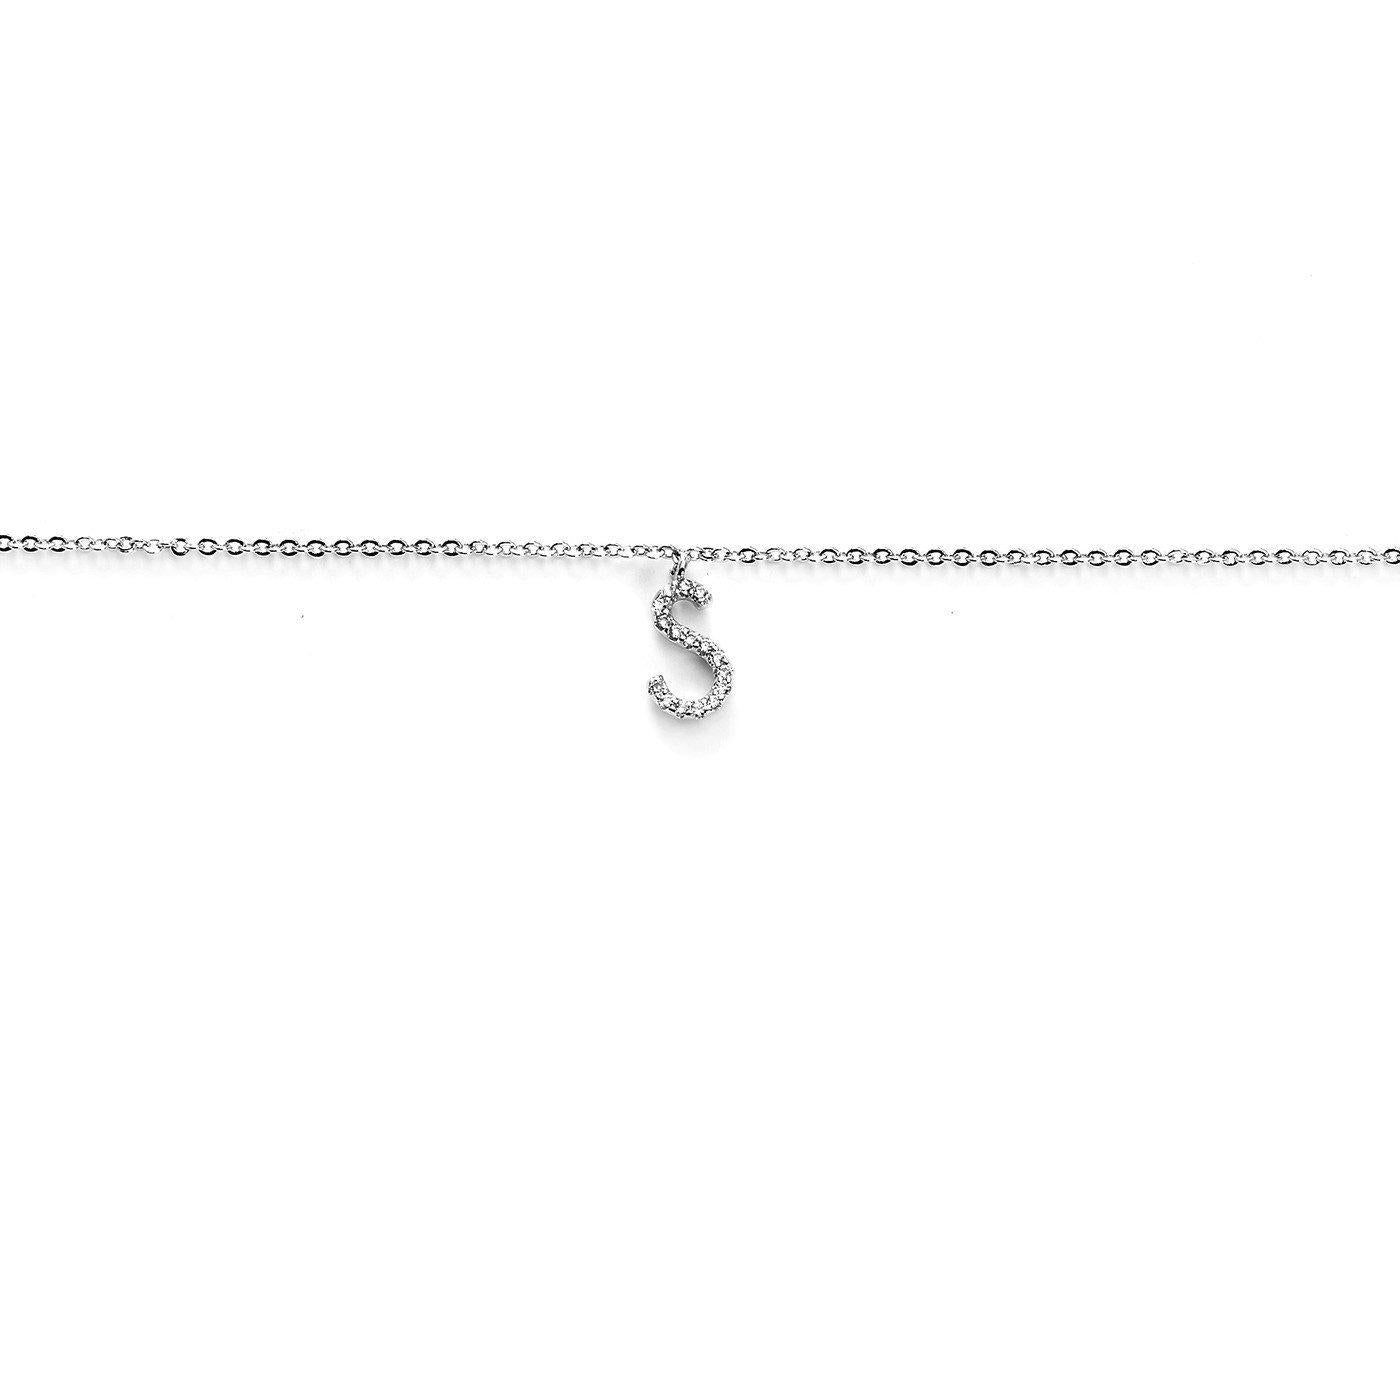 Your Initial S Anklet-Blinglane